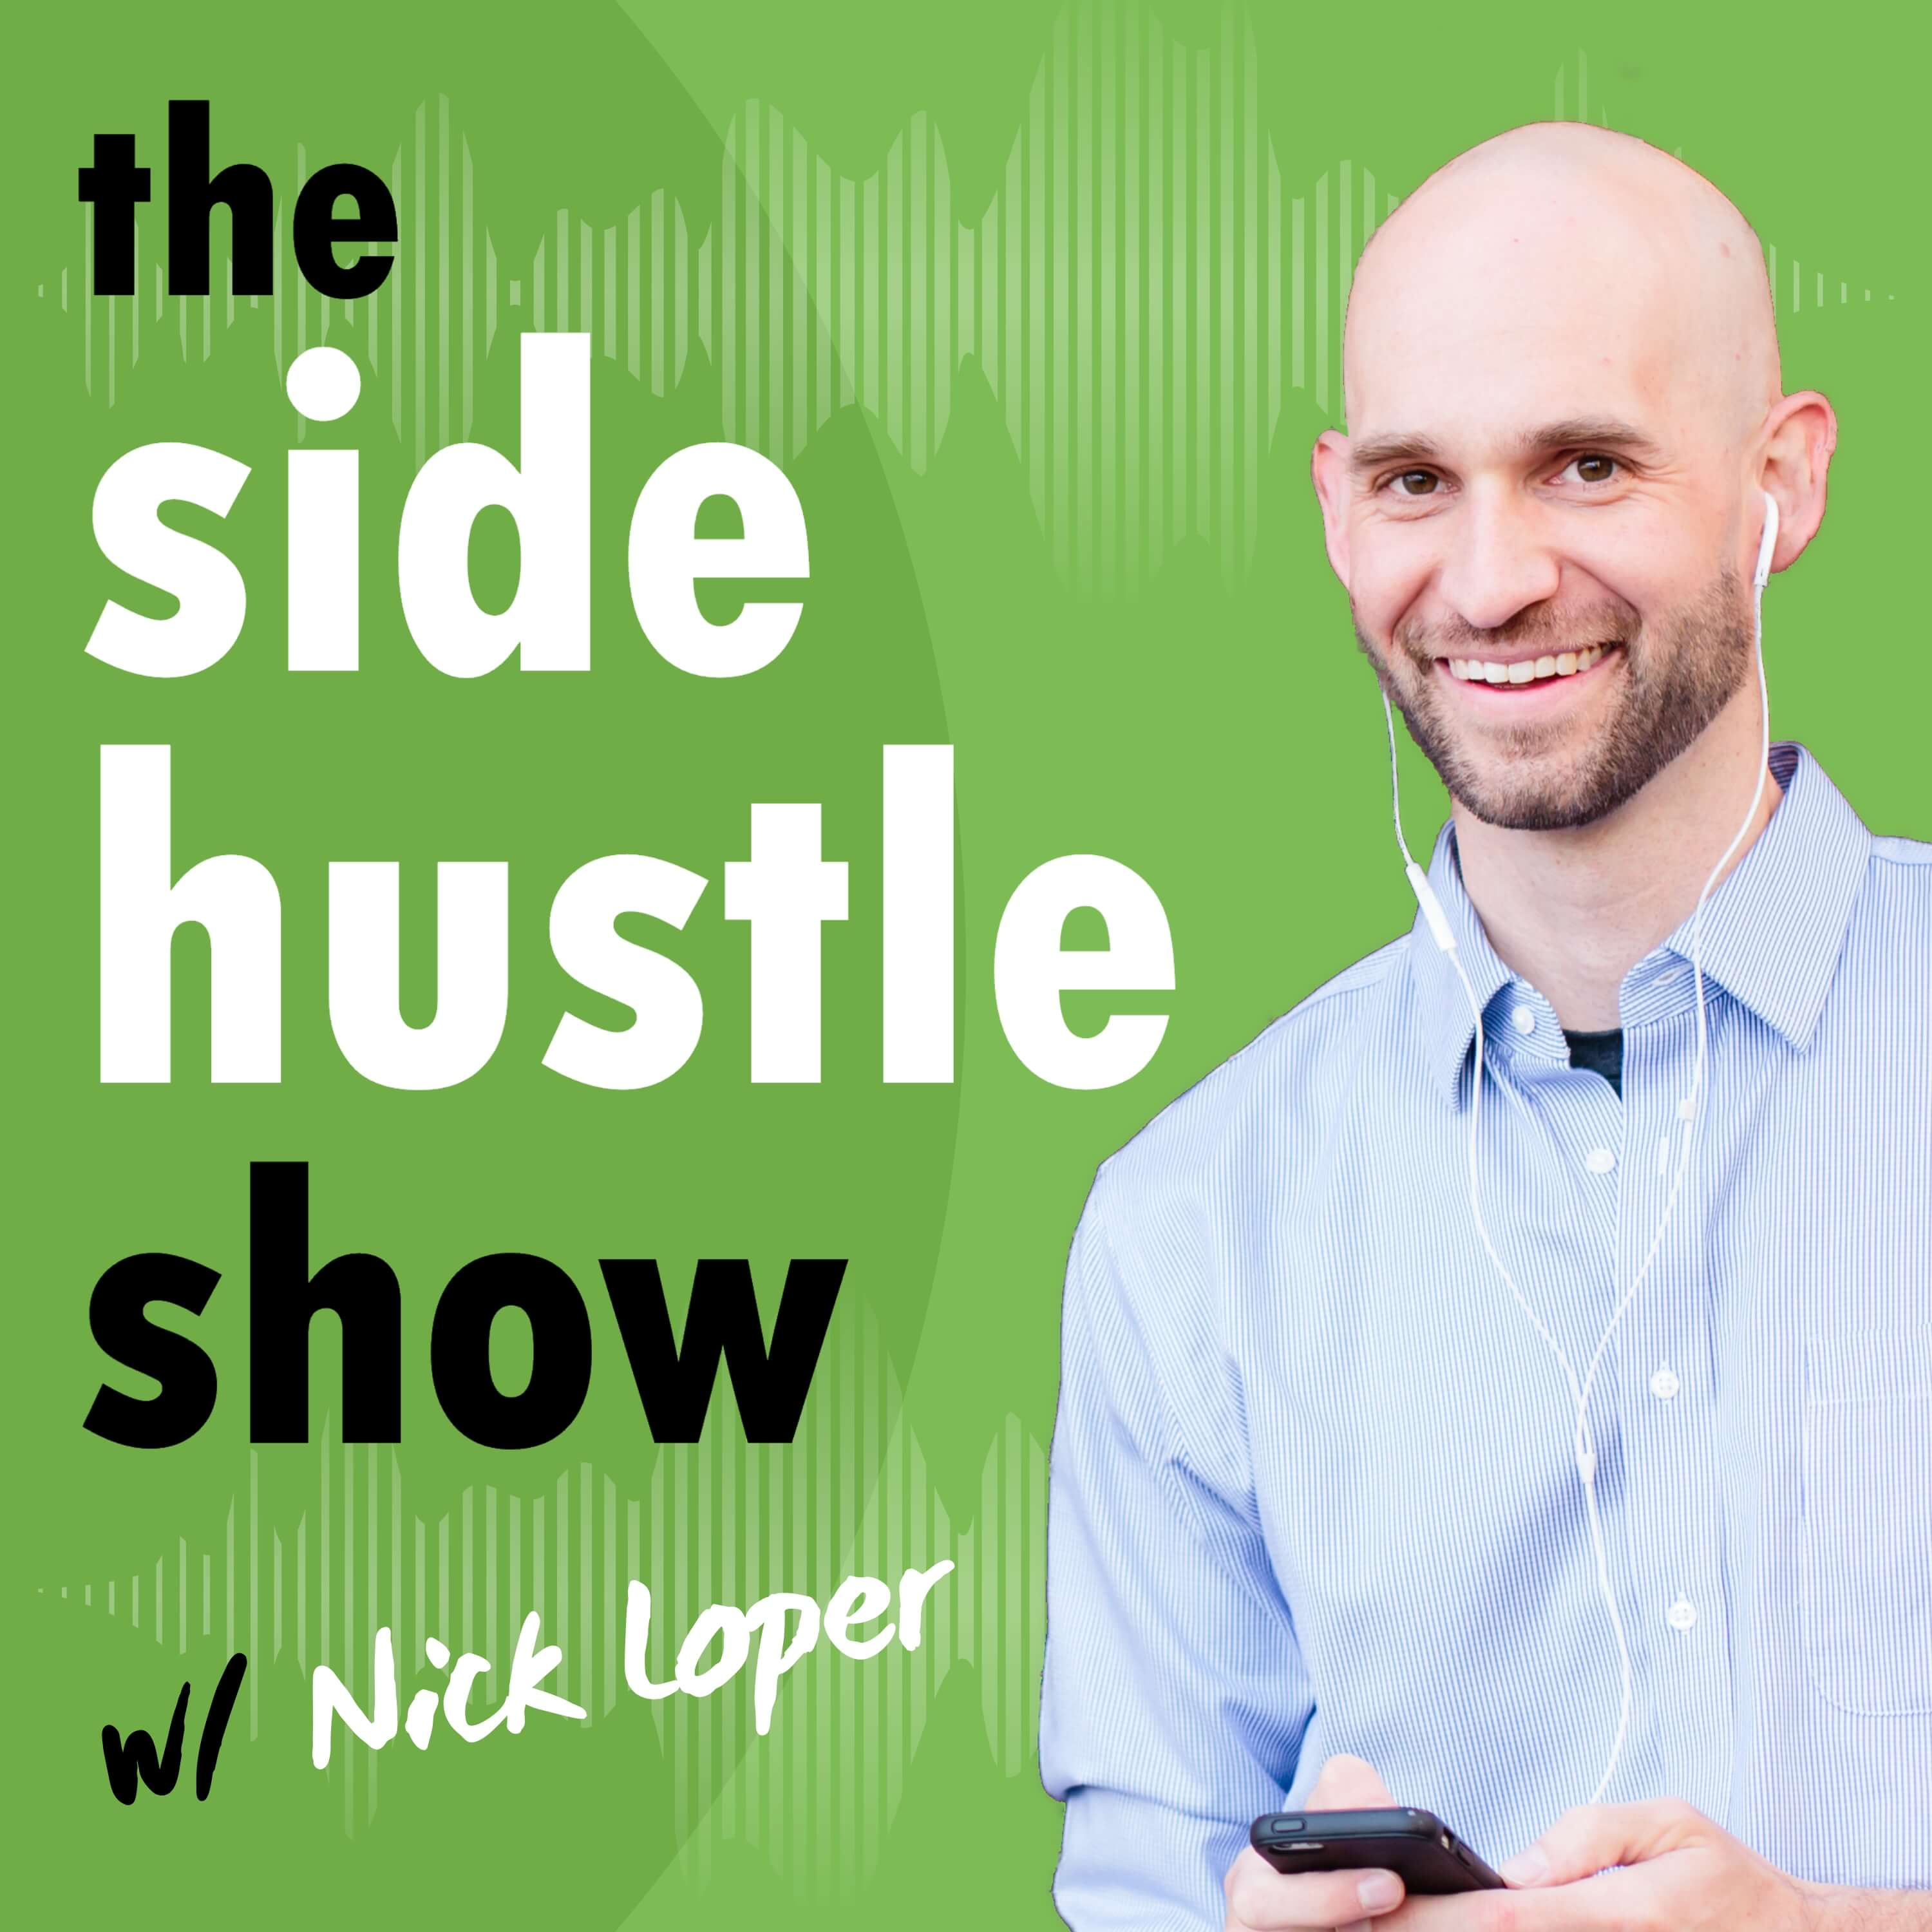 The Side Hustle Show: Business Ideas for Part-Time Entrepreneurs